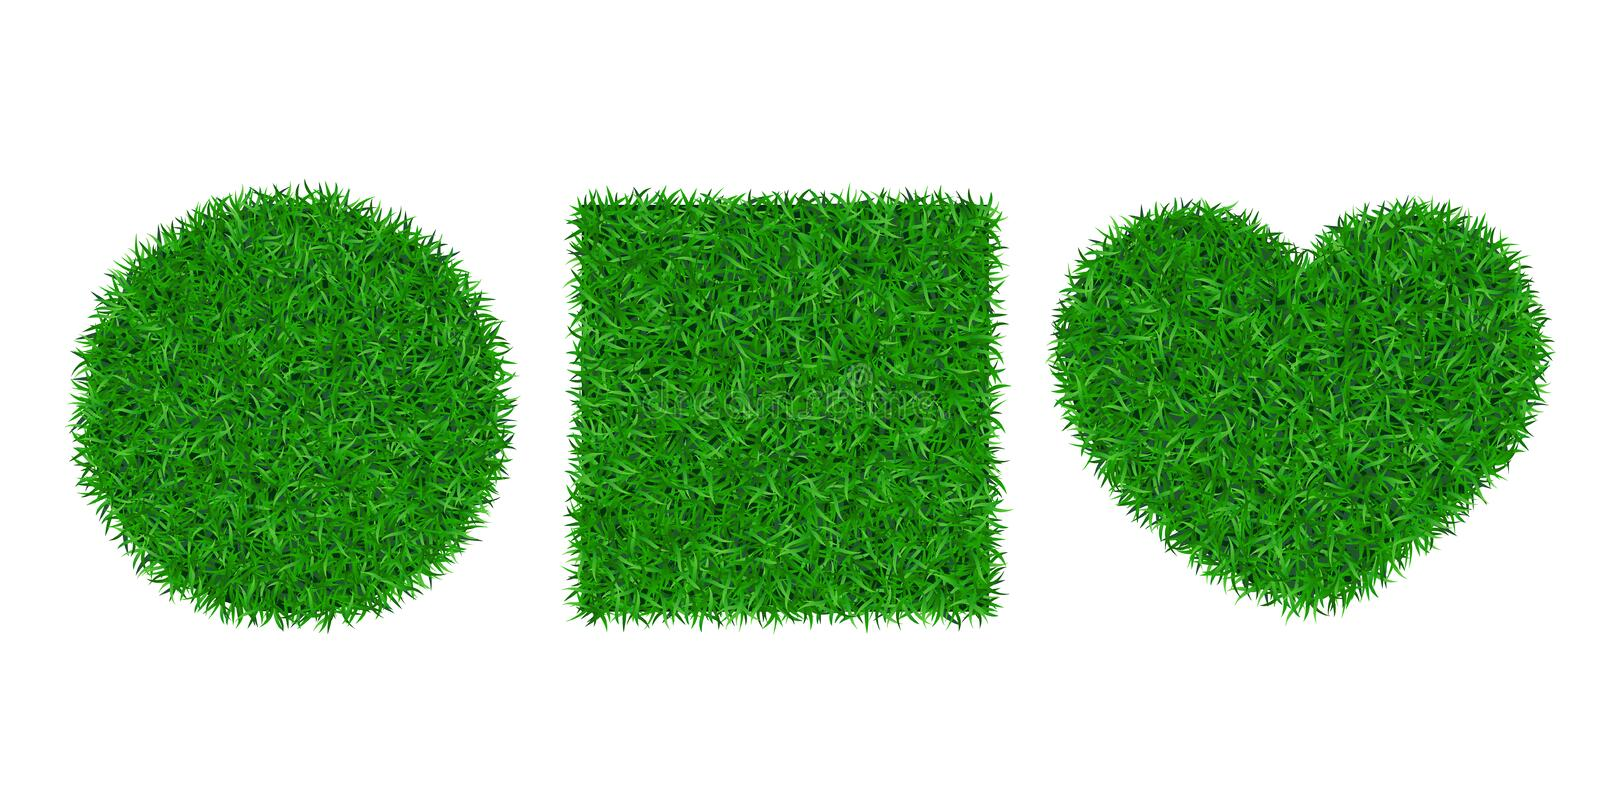 Green grass background 3D set. Lawn greenery nature circle ball, heart. Abstract soccer field texture square. Ground. Landscape grassland pattern. Grassy design stock illustration